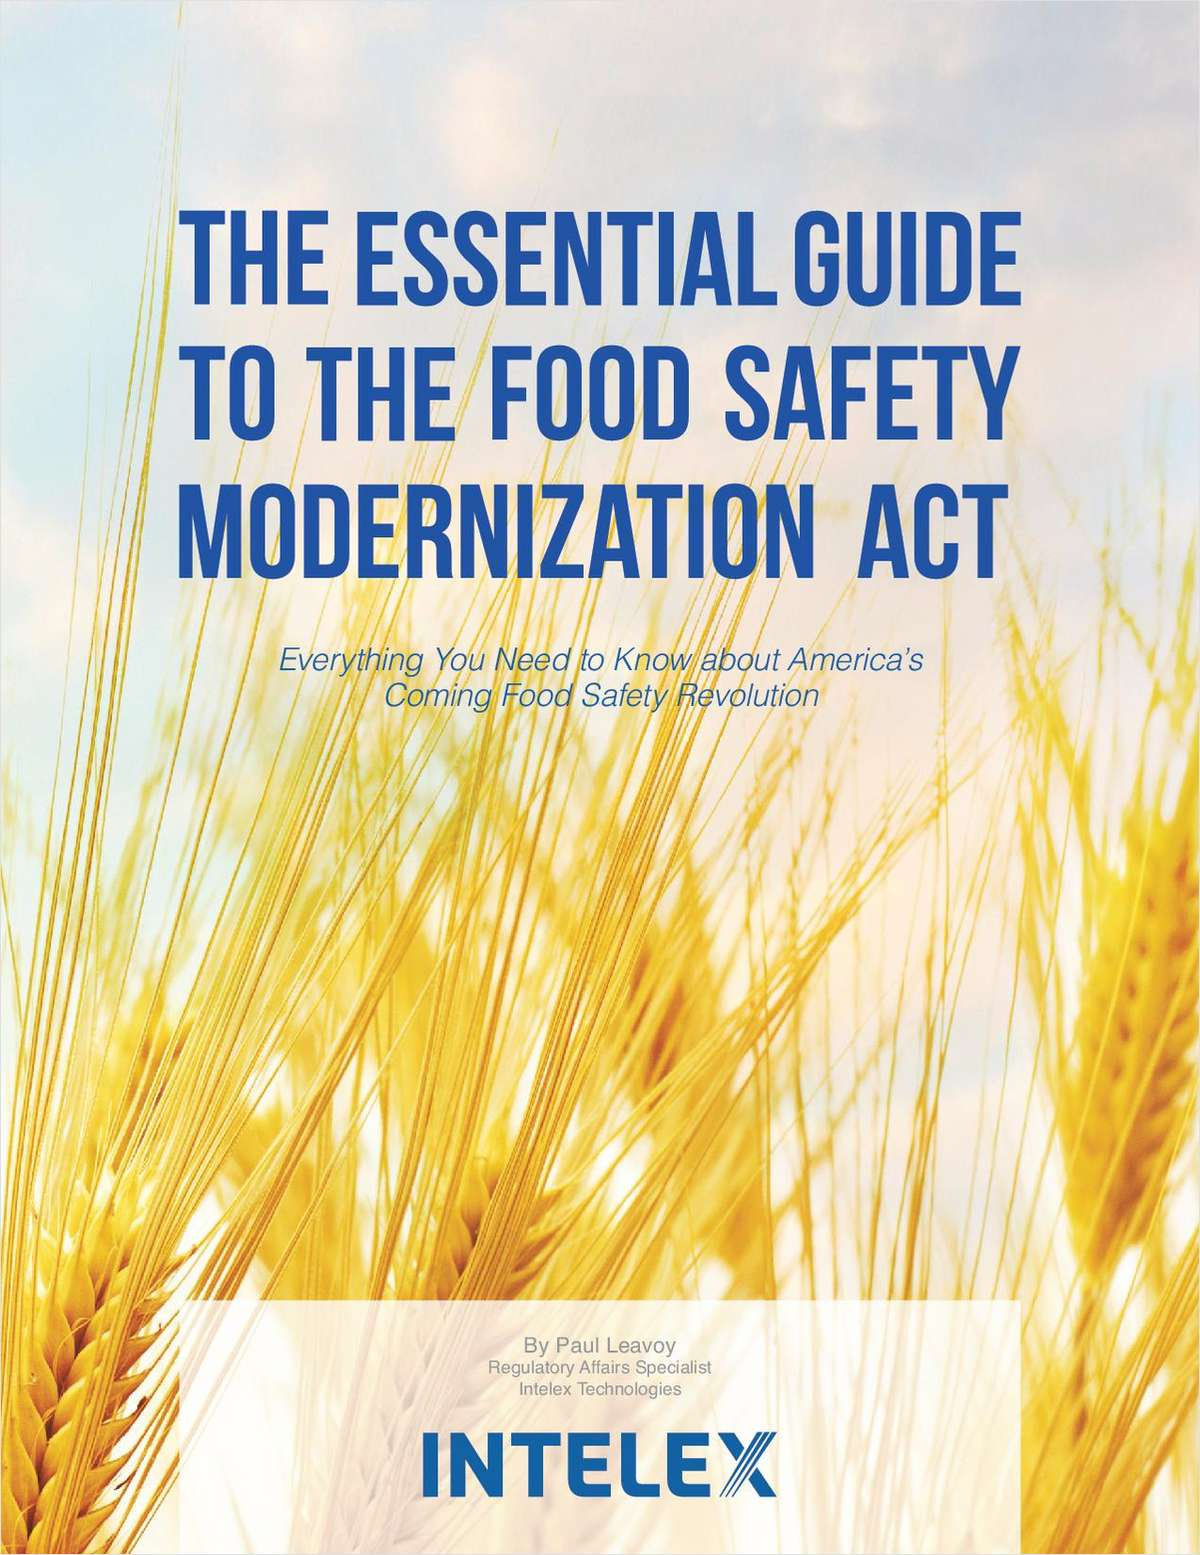 The Essential Guide to the Food Safety Modernization Act